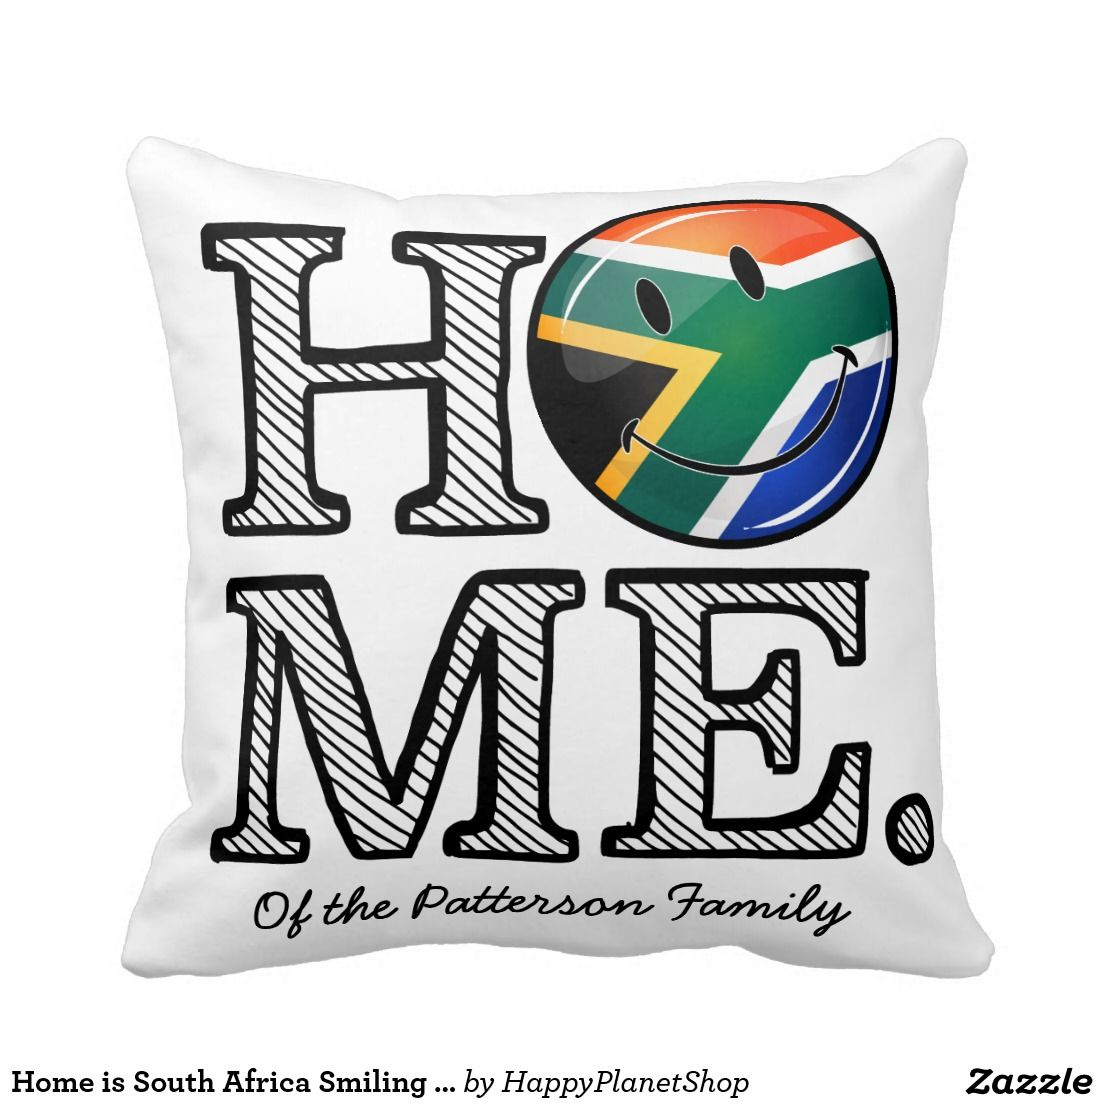 Home is South Africa Smiling Flag Housewarming Pillow